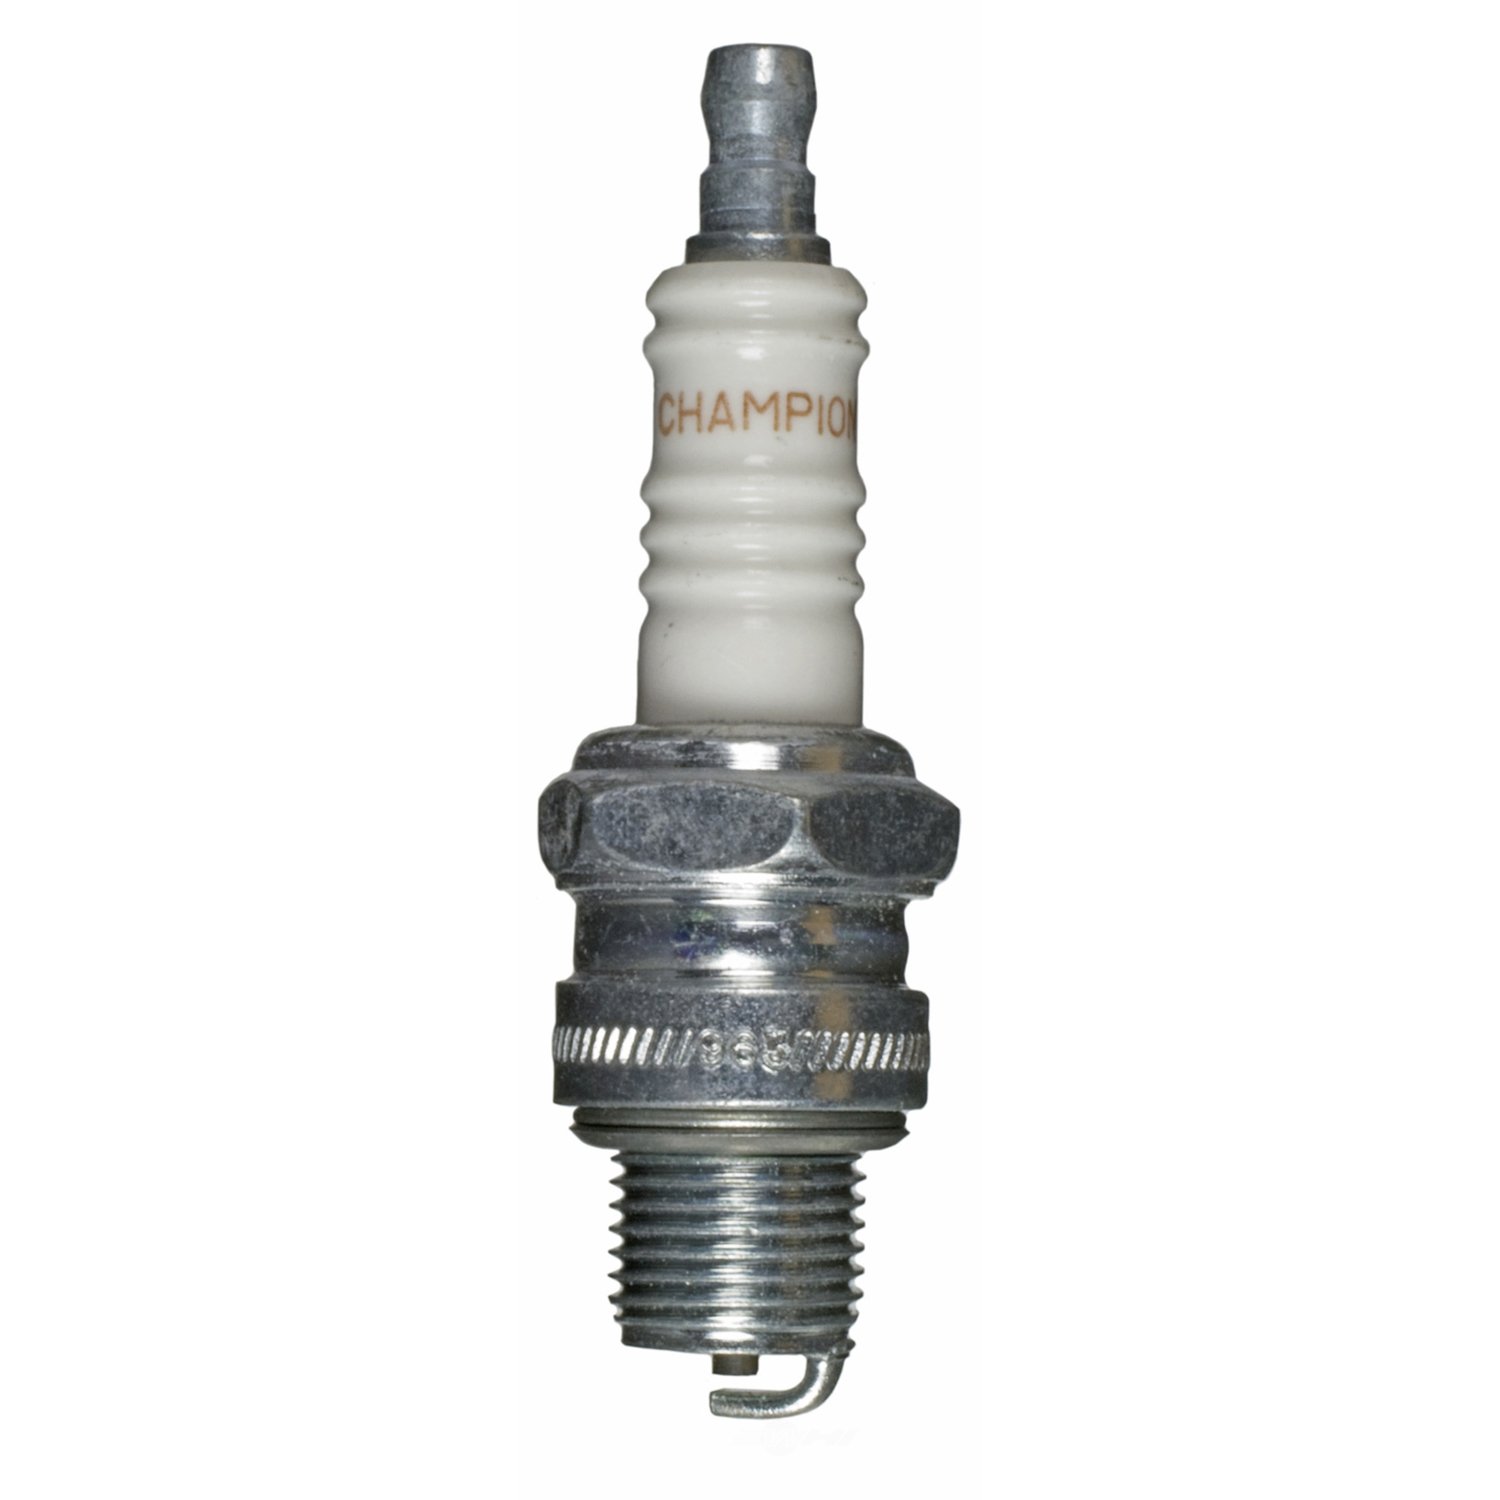 CHAMPION SPARK PLUGS - Copper Plus - CHA 811